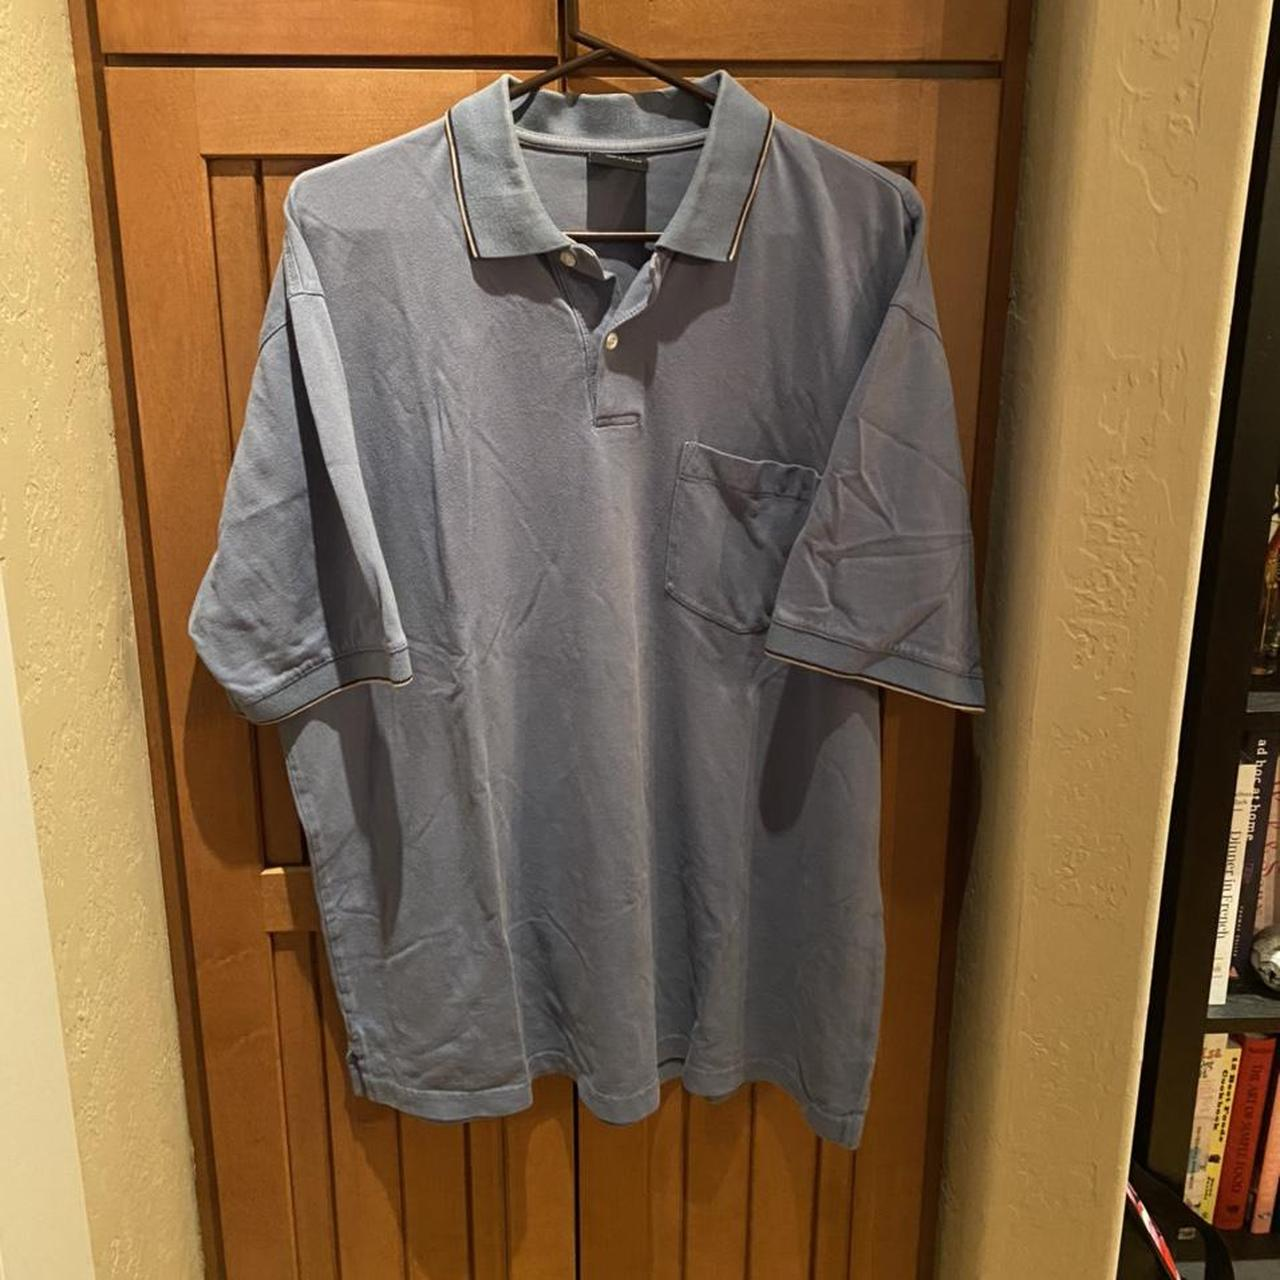 Product Image 1 - Cambridge classic polo blue and